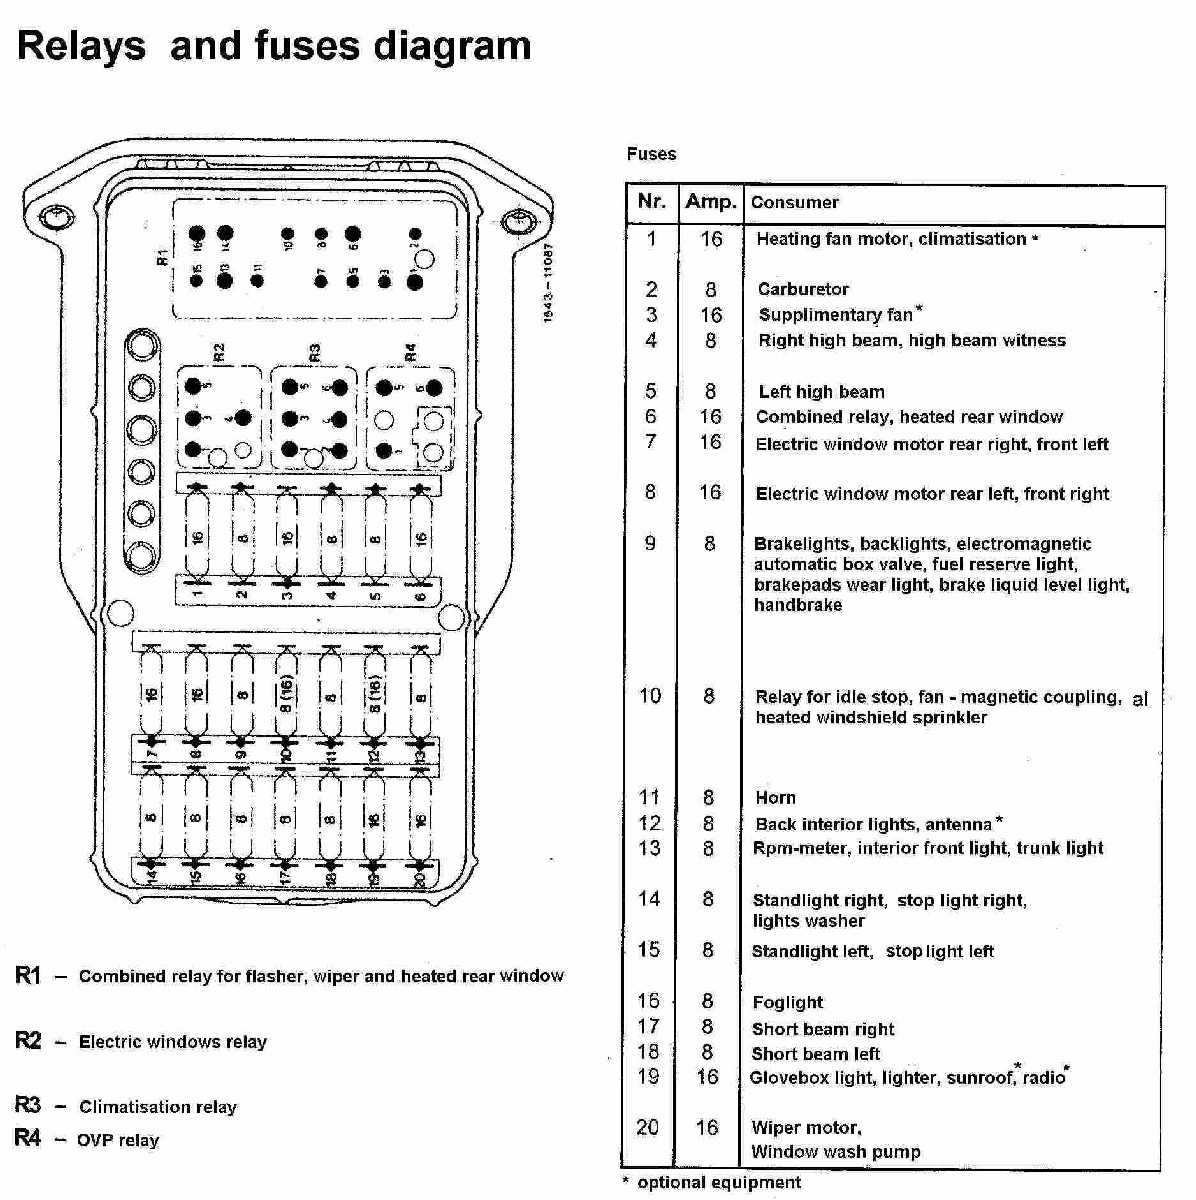 D Fuse Relays E on Mercedes Benz 190e Fuse Box Diagram